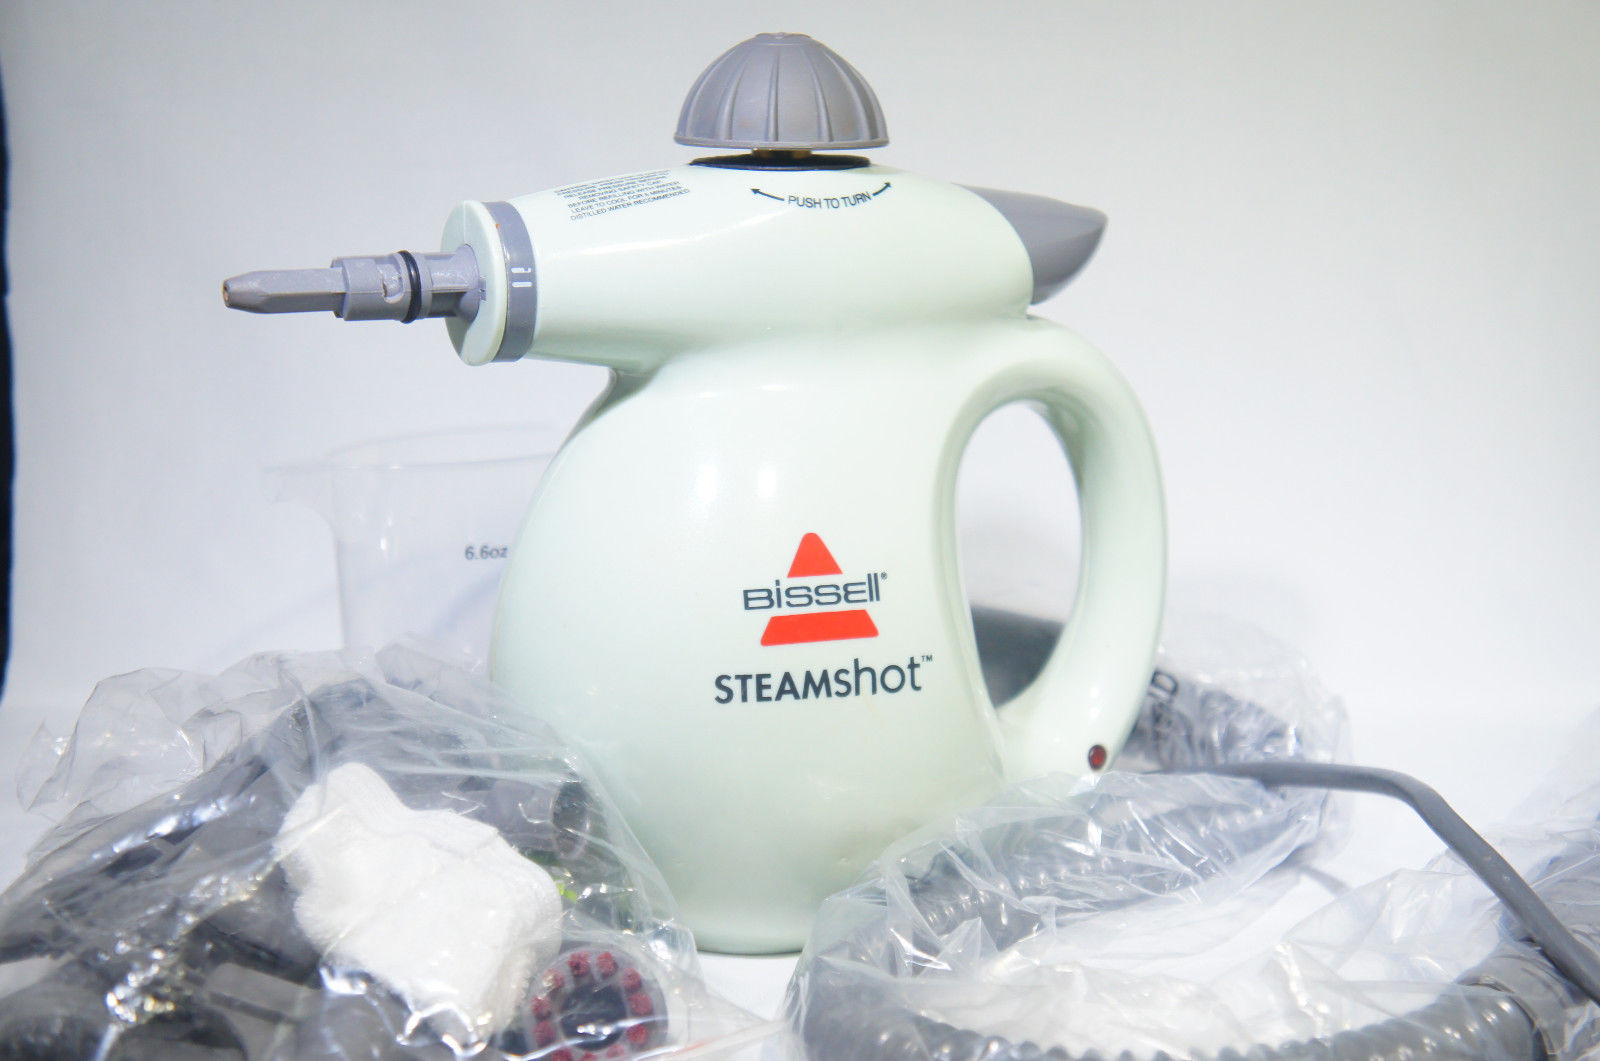 Bissell 39N7A Steam Shot Hard-Surface Cleaner